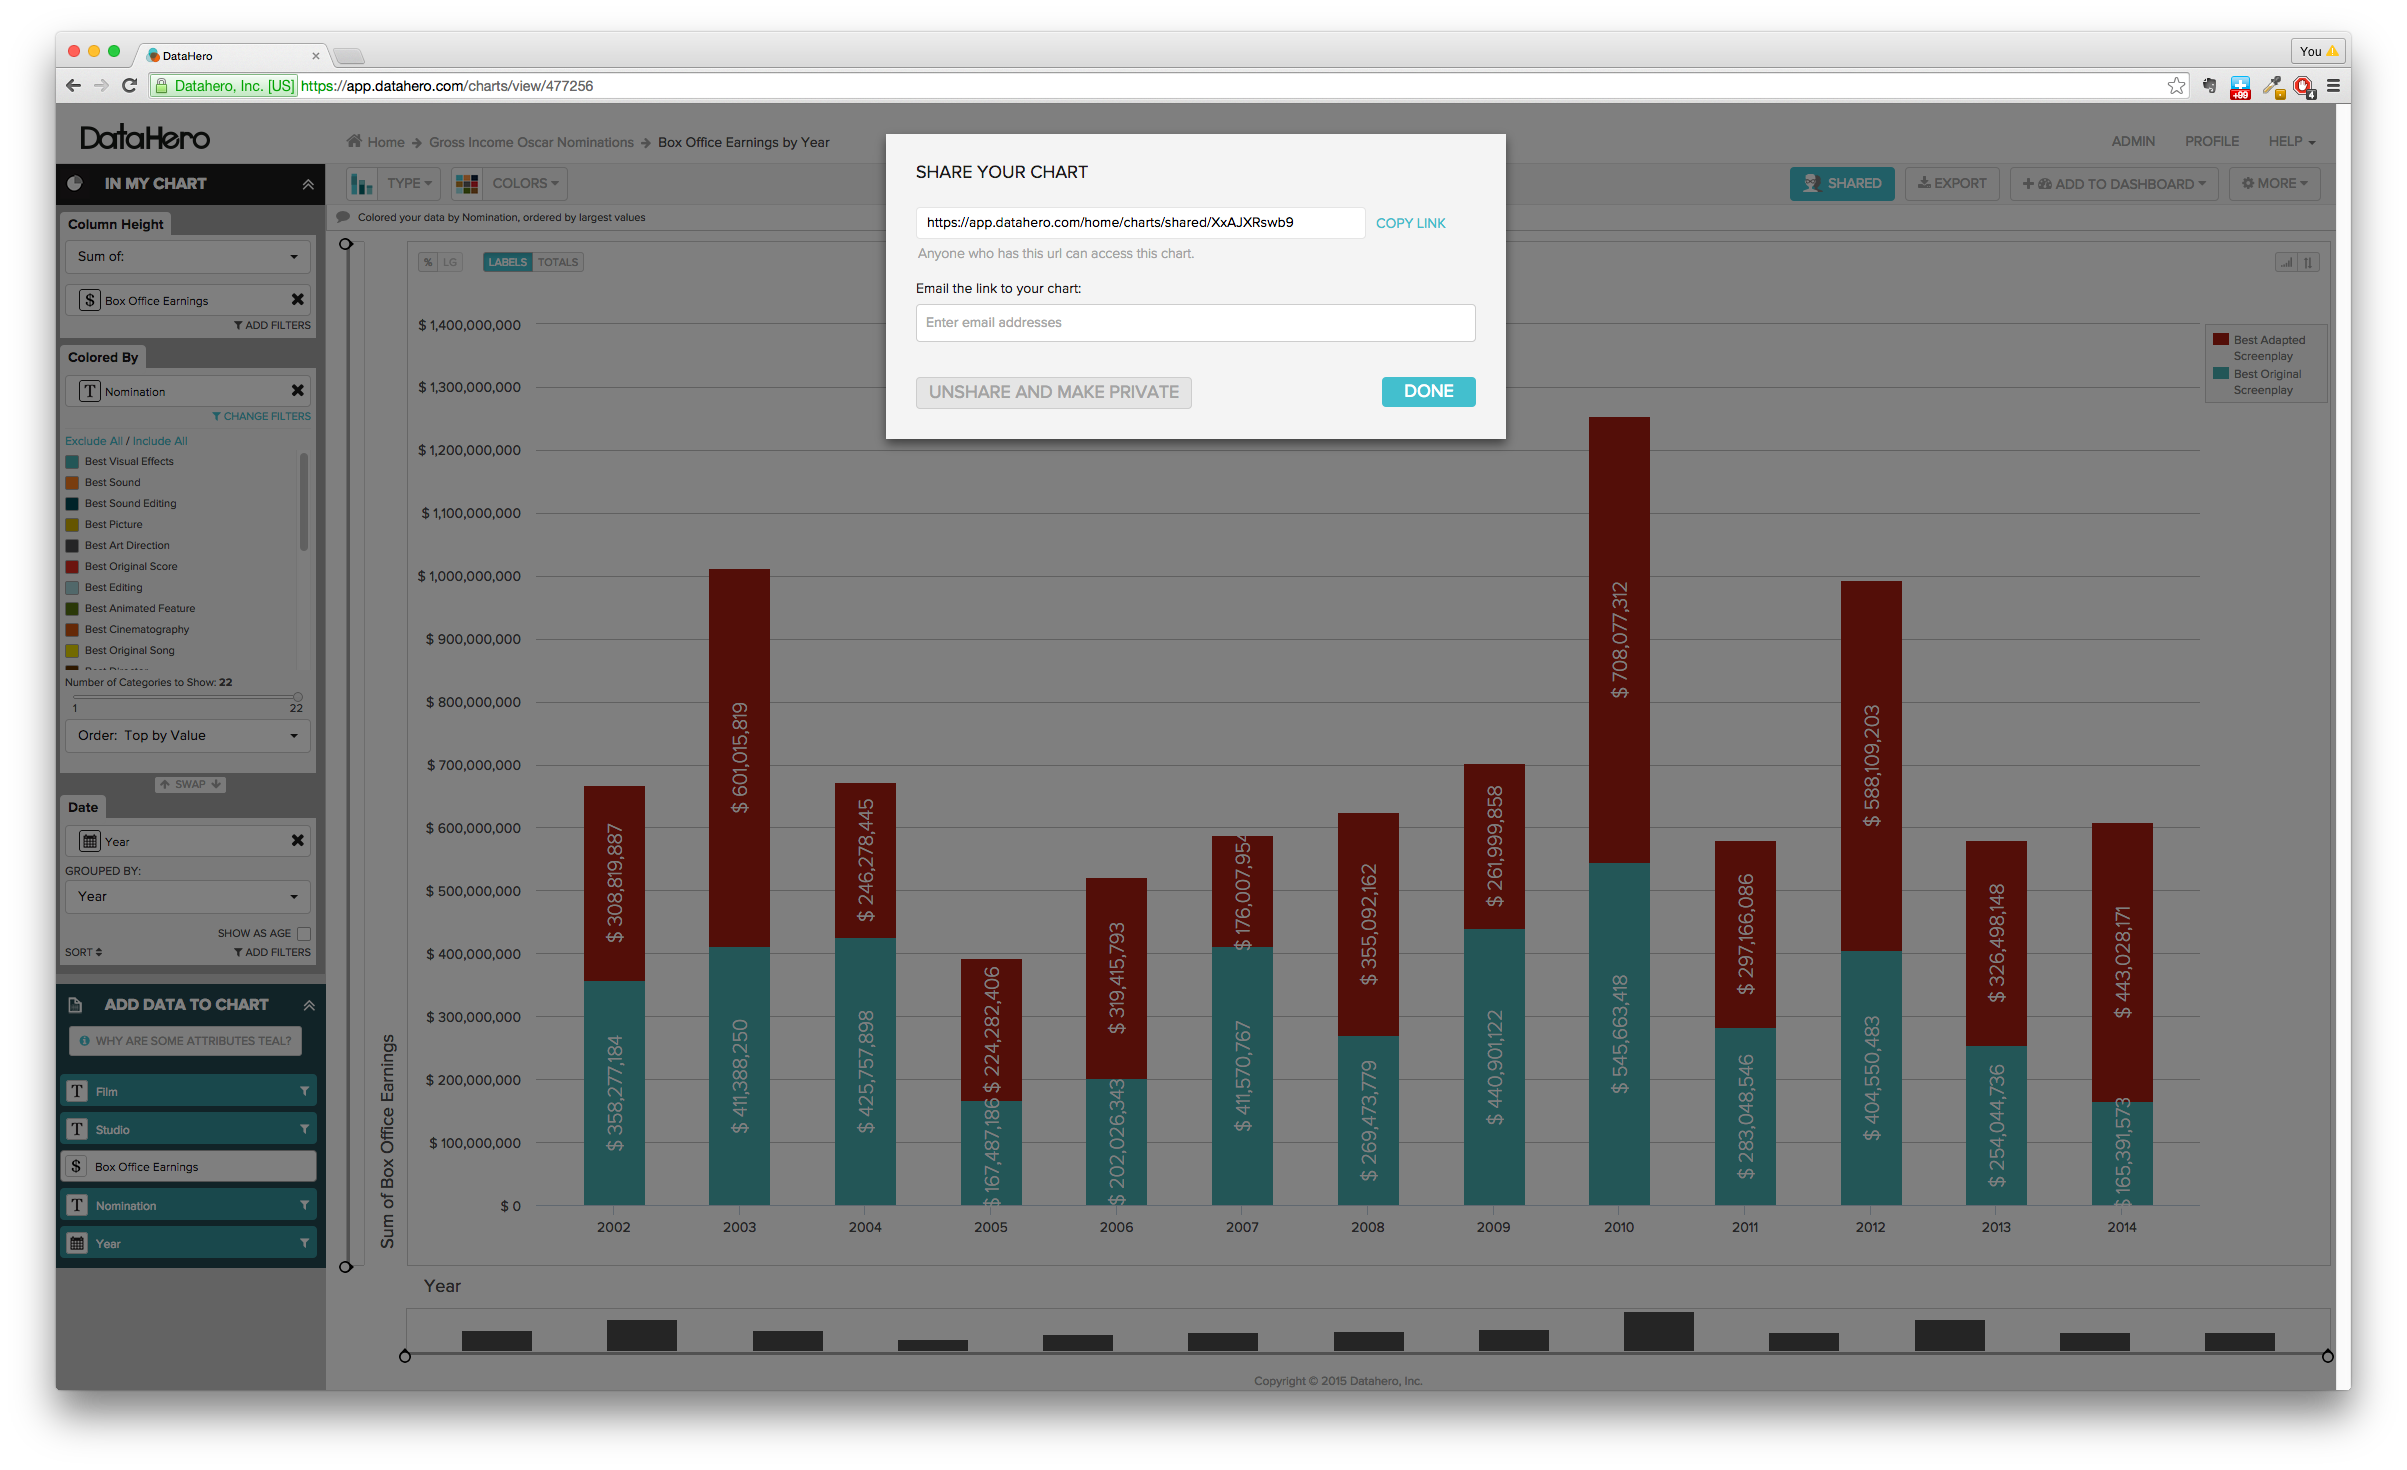 DataHero's charts and dashboards can be shared for collaboration, or published in a read-only format